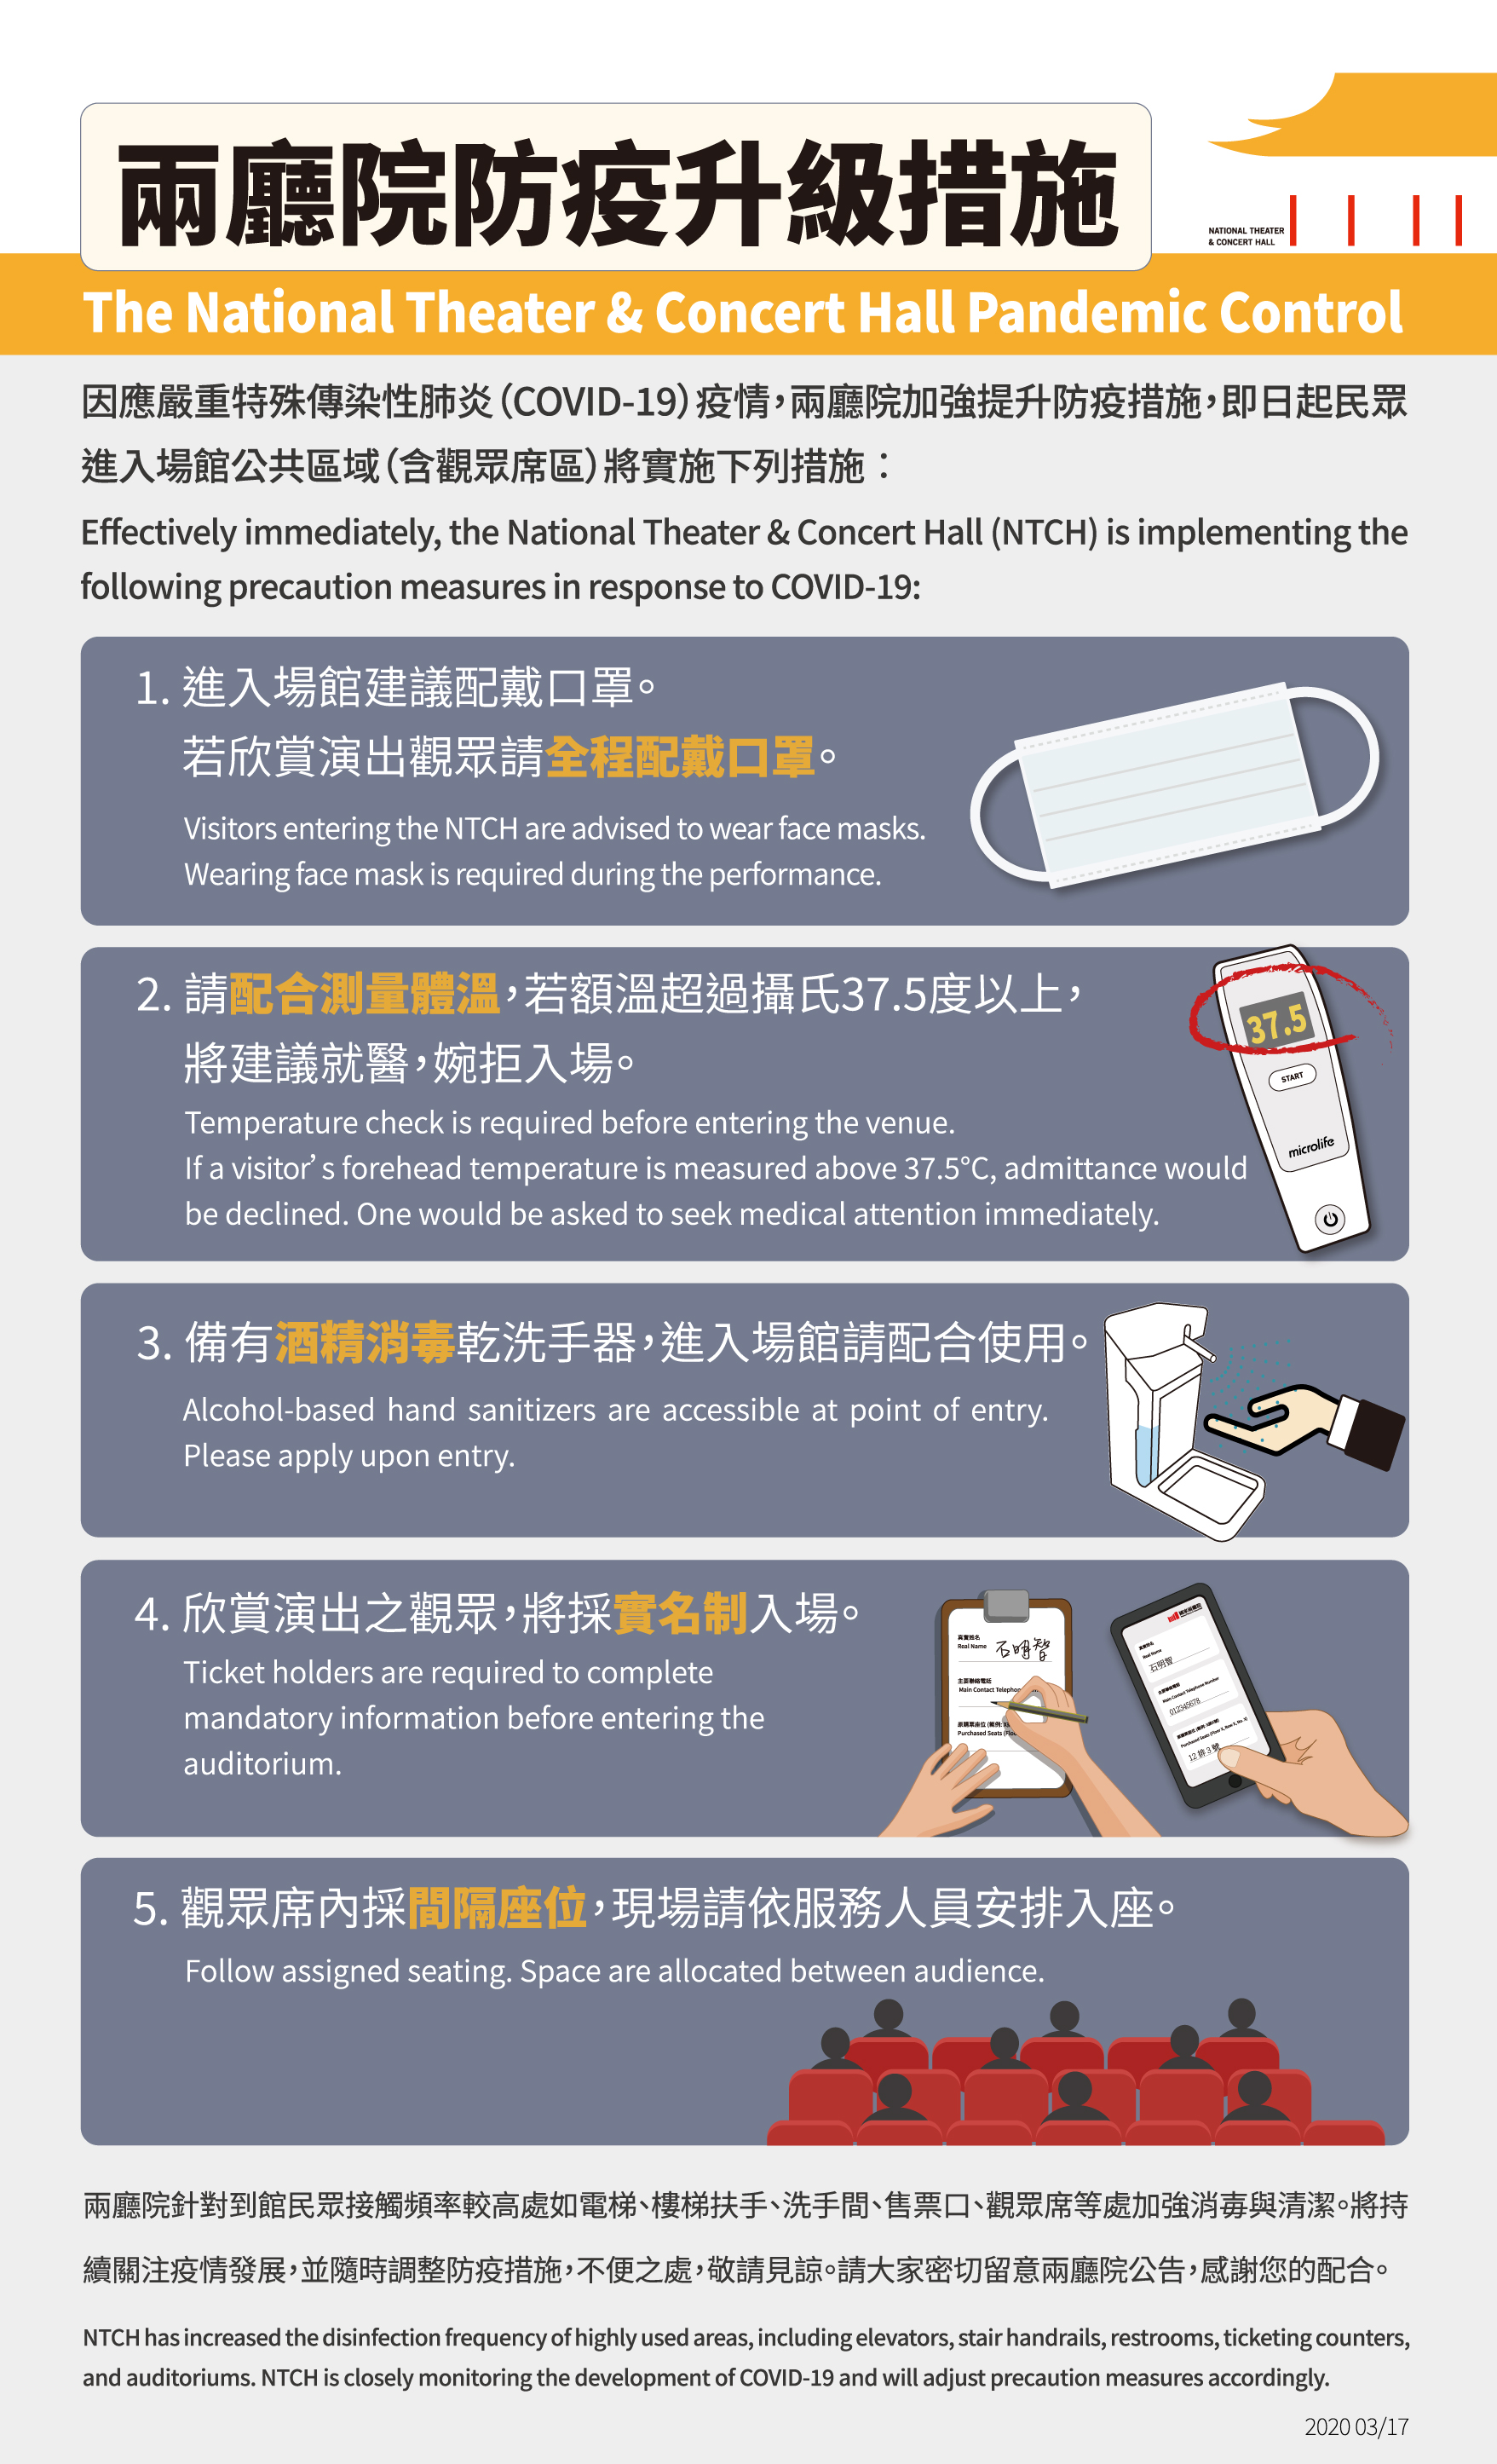 COVID-19 prevention guide for performances, exhibitions in Taiwan